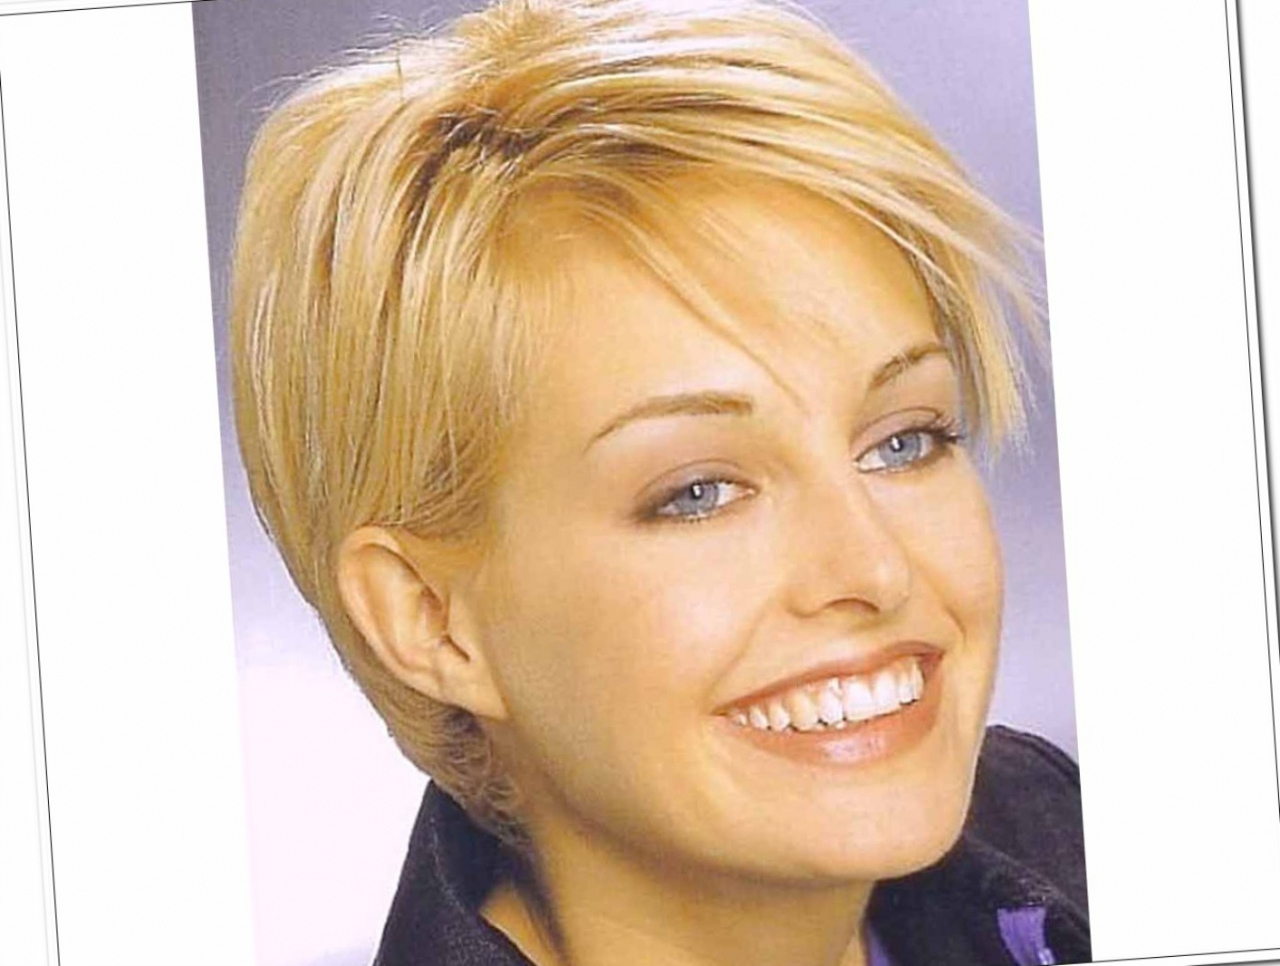 77 Shoulder Length Hairstyles For Women Over 50 Awesome Stunning Regarding Short Length Hairstyles For Women Over  (View 21 of 25)